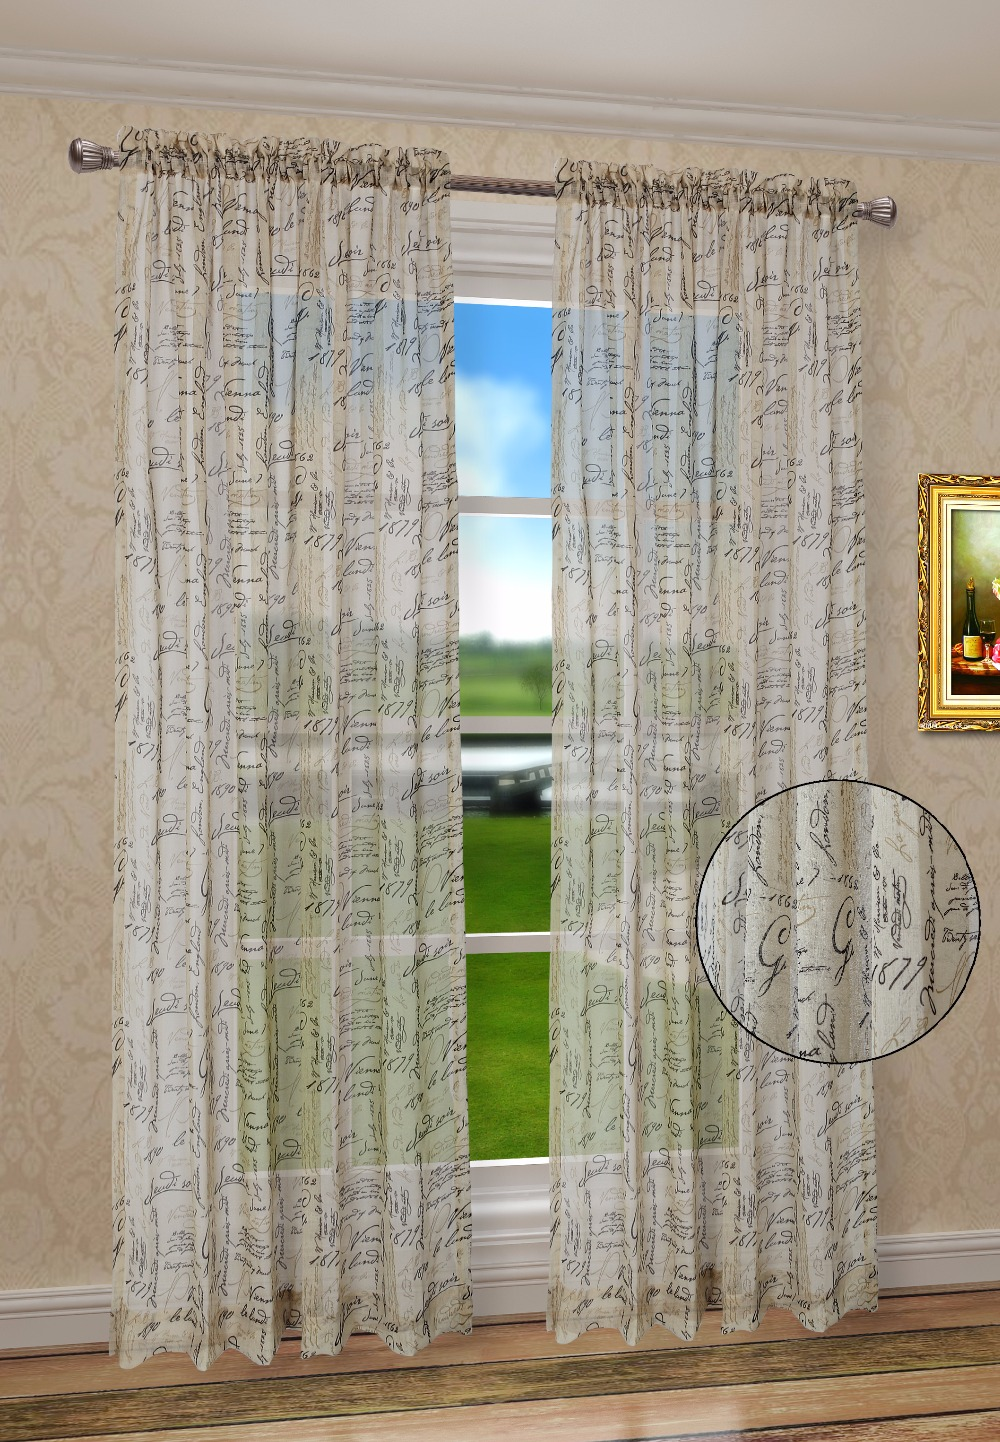 Euphoria French Script Faux Linen Sheer Window Valance Curtain Panel Taupe Color 50